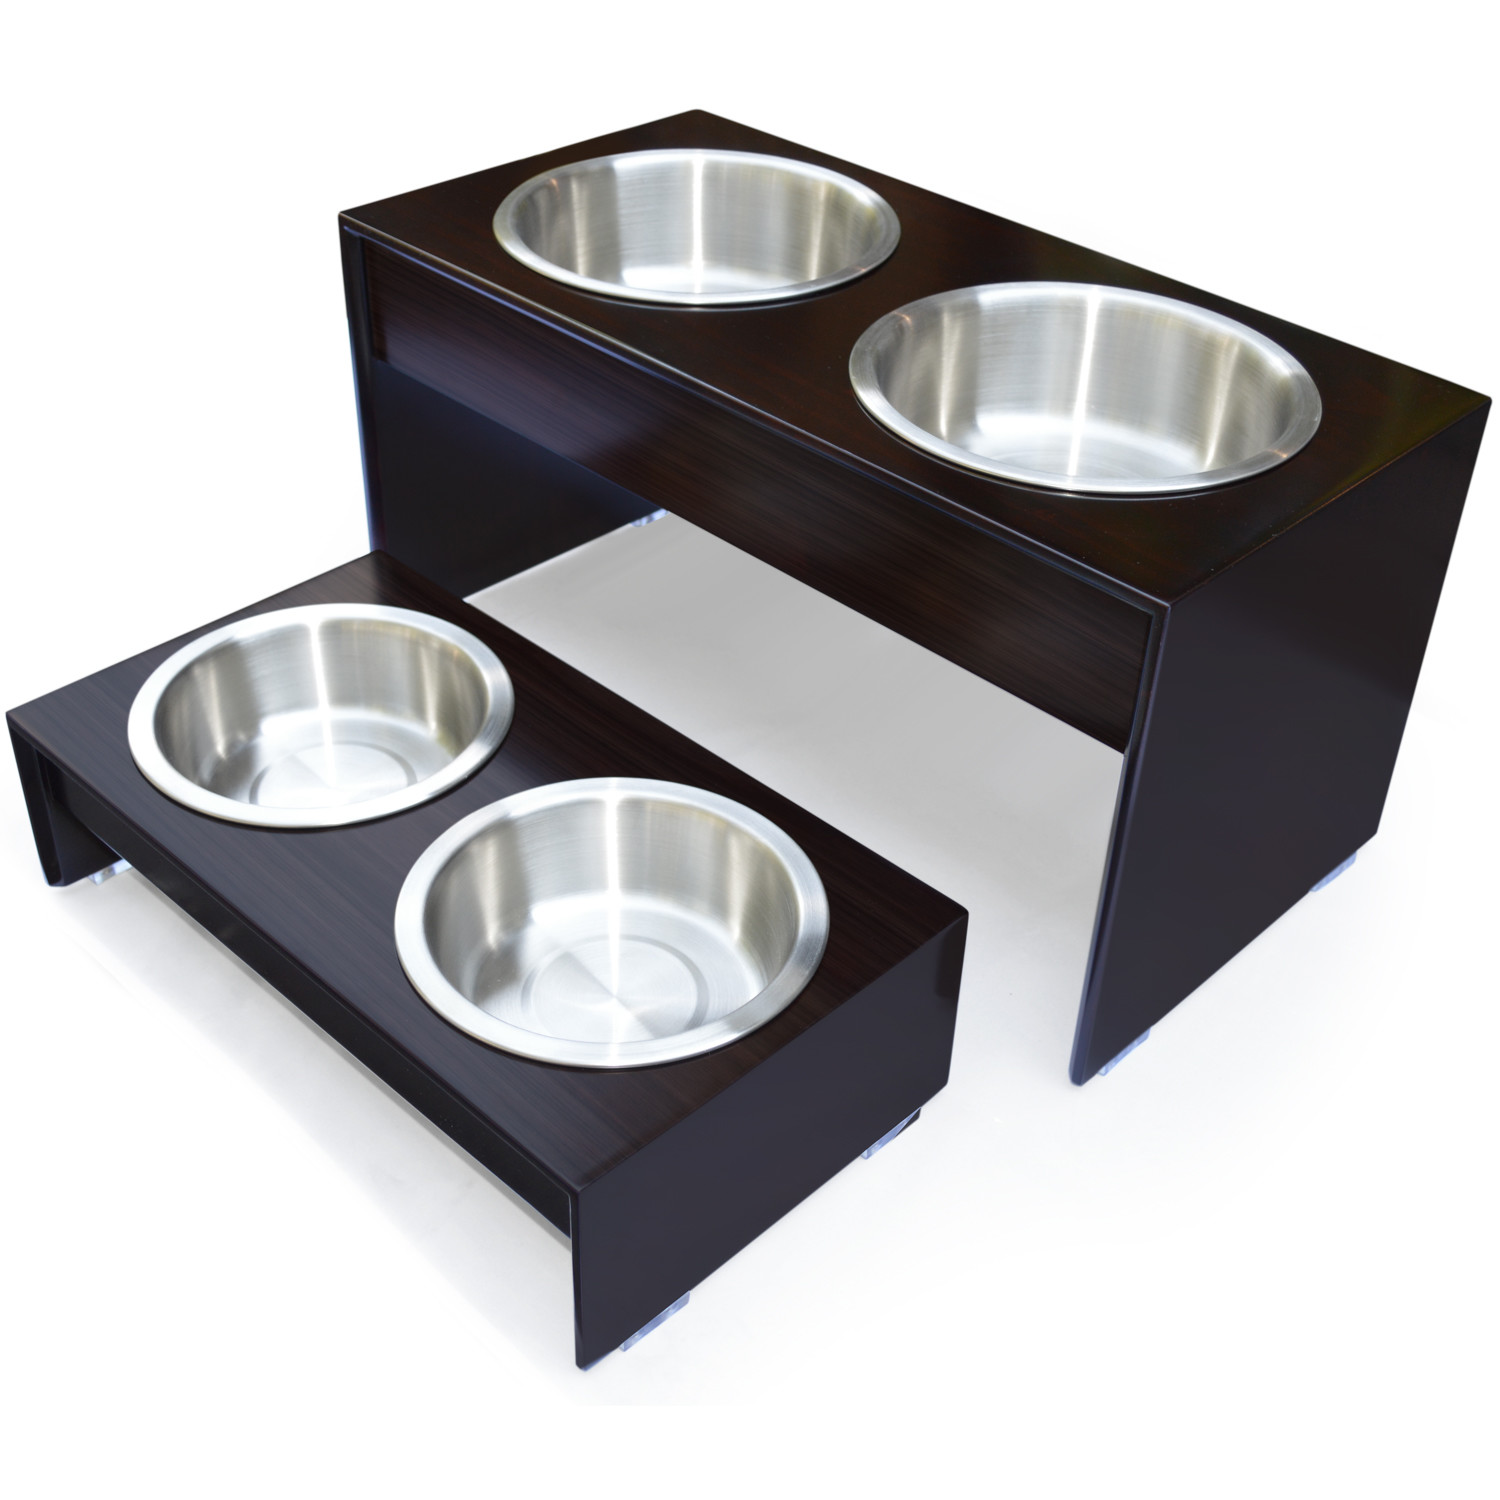 Charming Elevated Dog Bowls for Best Dog Bowl Ideas: Elevated Dog Bowls | Dog Auto Feeder | Elevated 3 Bowl Dog Feeder